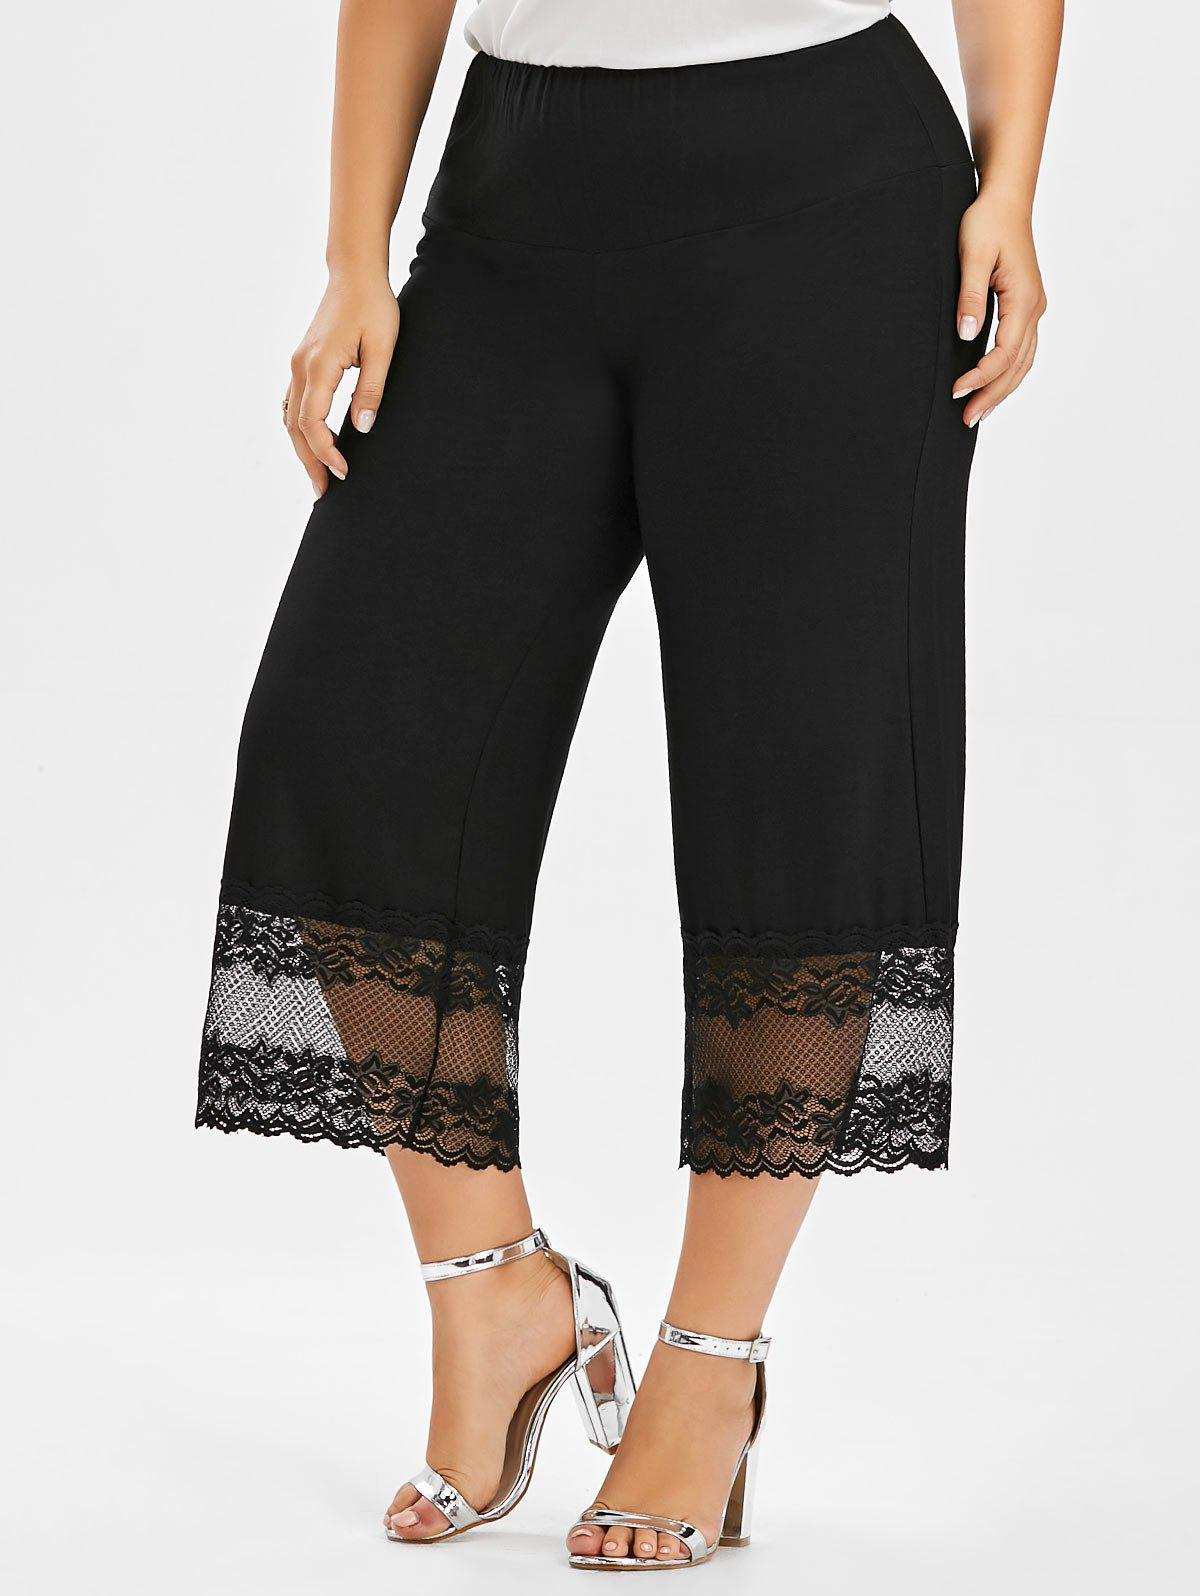 Plus Size Lace Trim Wide Leg PantsWOMEN<br><br>Size: XL; Color: BLACK; Style: Casual; Length: Capri; Material: Polyester; Fit Type: Loose; Waist Type: Mid; Closure Type: Elastic Waist; Pattern Type: Solid; Pant Style: Wide Leg Pants; With Belt: No; Weight: 0.2700kg; Package Contents: 1 x Pants;